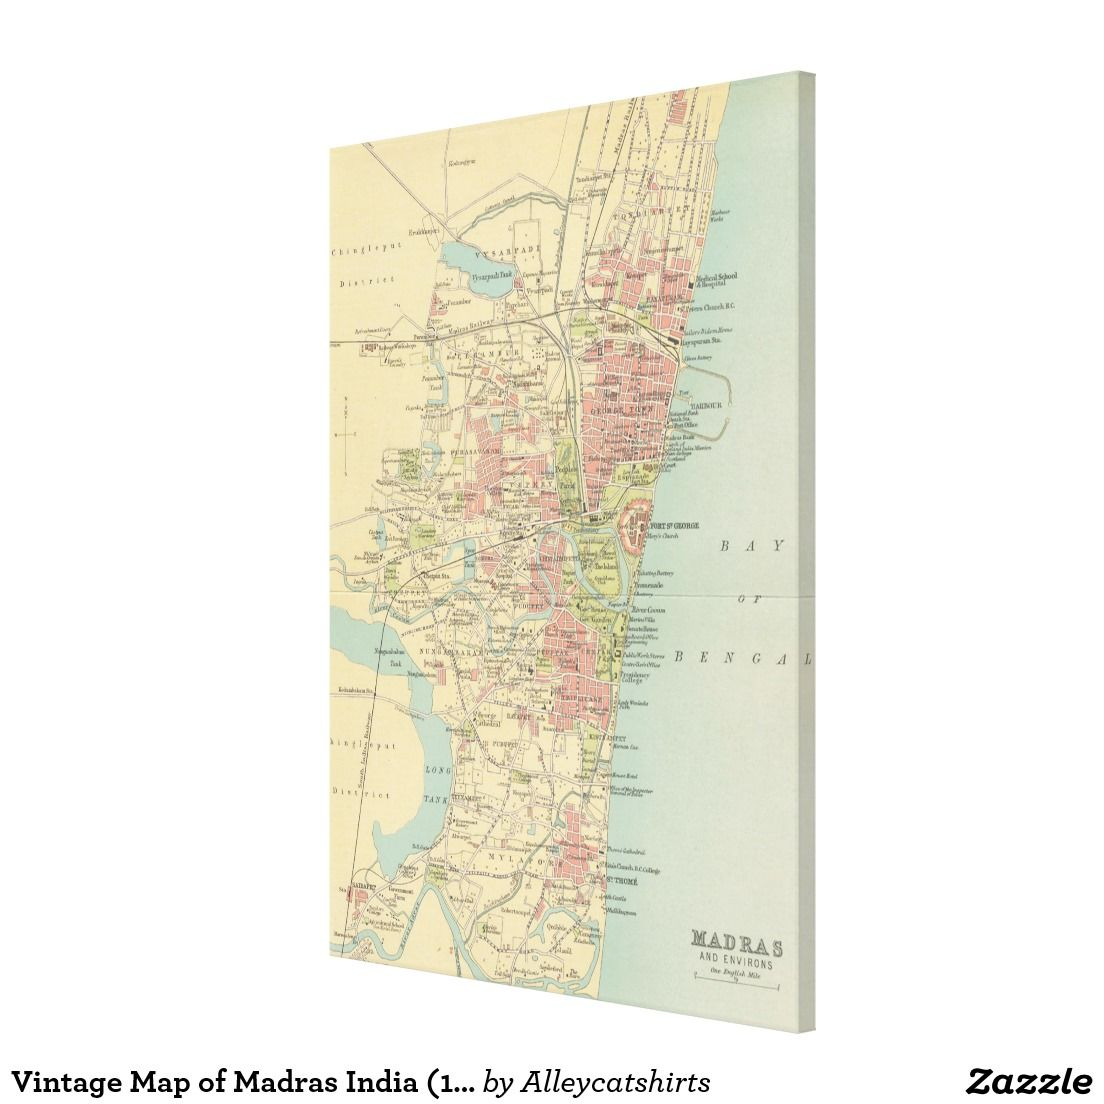 Vintage Map of Madras India (1909) Canvas Print | Zazzle.com ... on oslo norway on map, bora bora tahiti on map, medellin colombia on map, xiamen china on map, dublin ireland on map, bremen germany on map, madrid spain on map, port elizabeth south africa on map, copenhagen denmark on map, kuala lumpur malaysia on map, guangzhou china on map, bucharest romania on map, stockholm sweden on map, buenos aires argentina on map, phuket thailand on map, nice france on map, jakarta indonesia on map, shannon ireland on map, munich germany on map, cape town south africa on map,